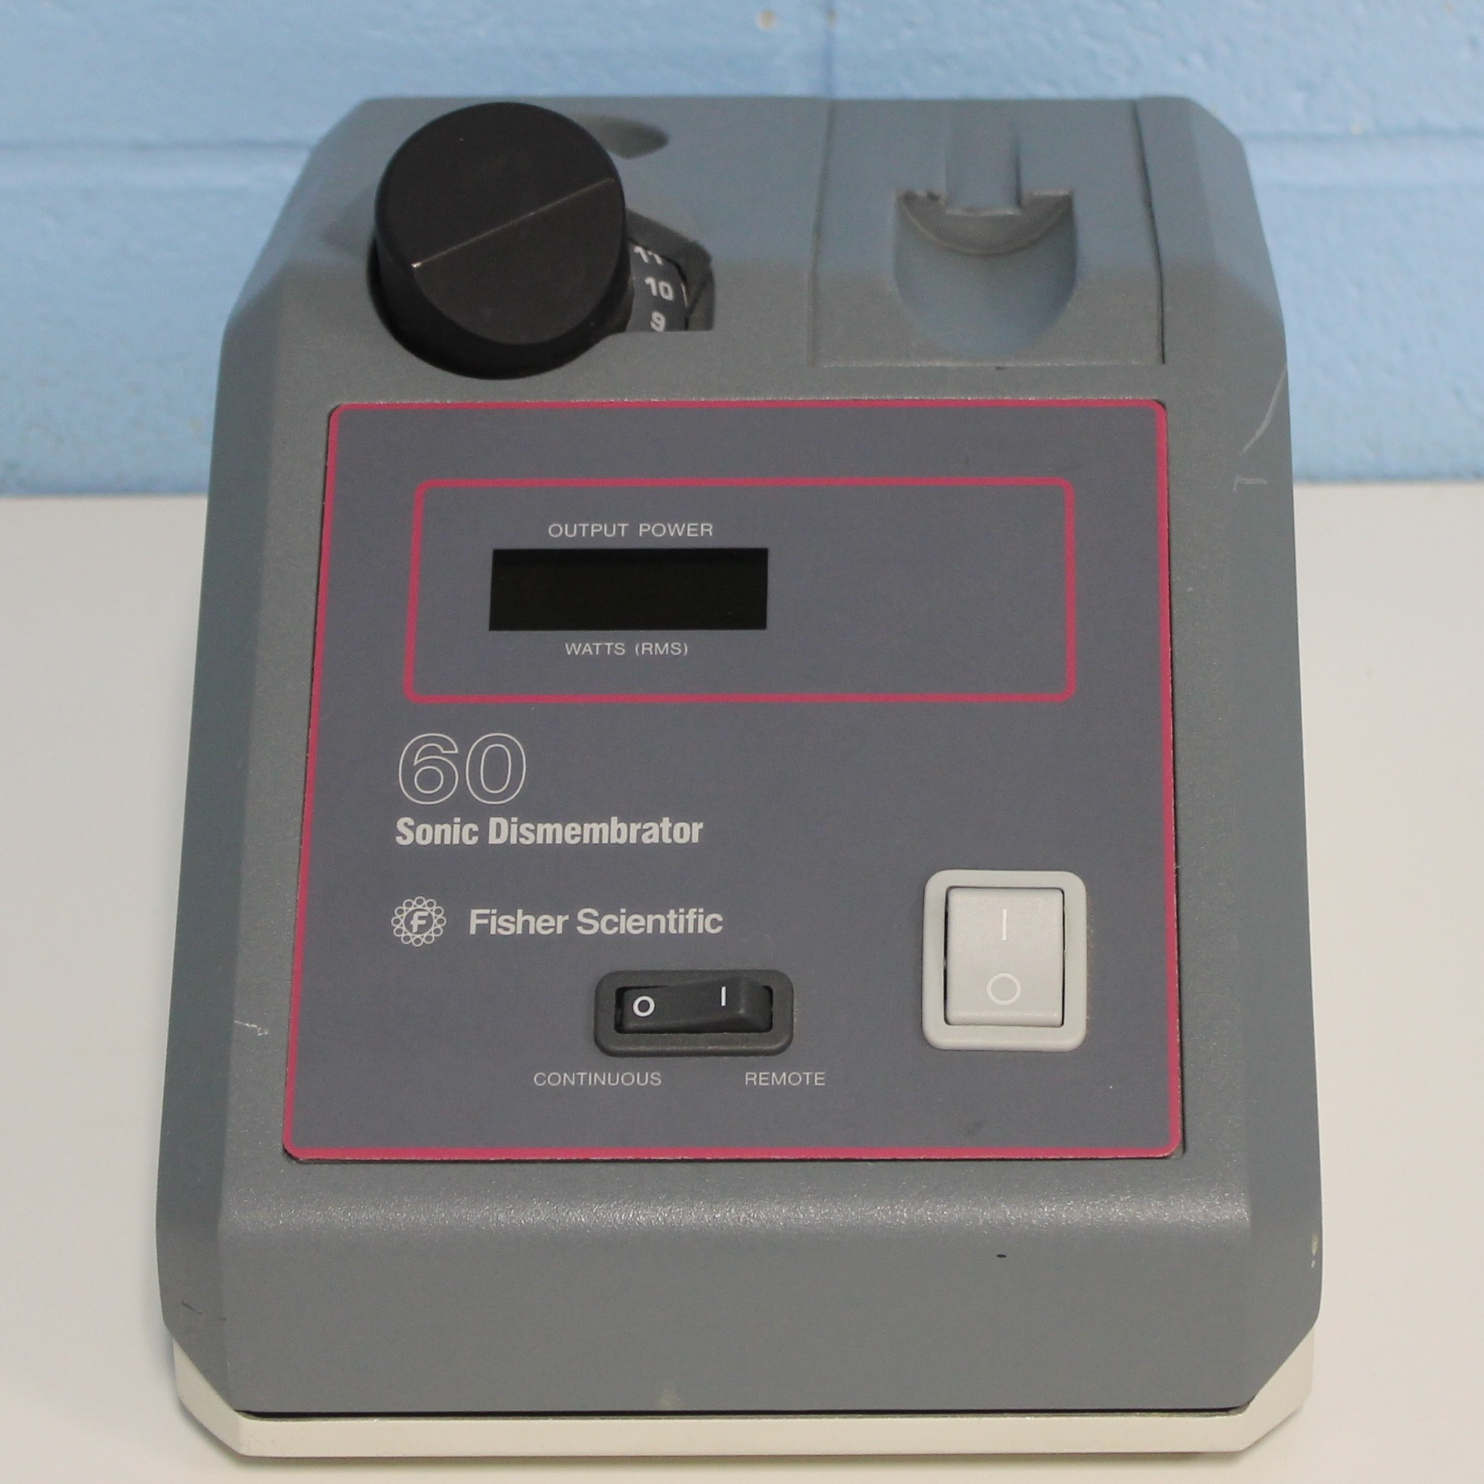 Fisher Scientific Series 60 Sonic Dismembrator Model F60 Image